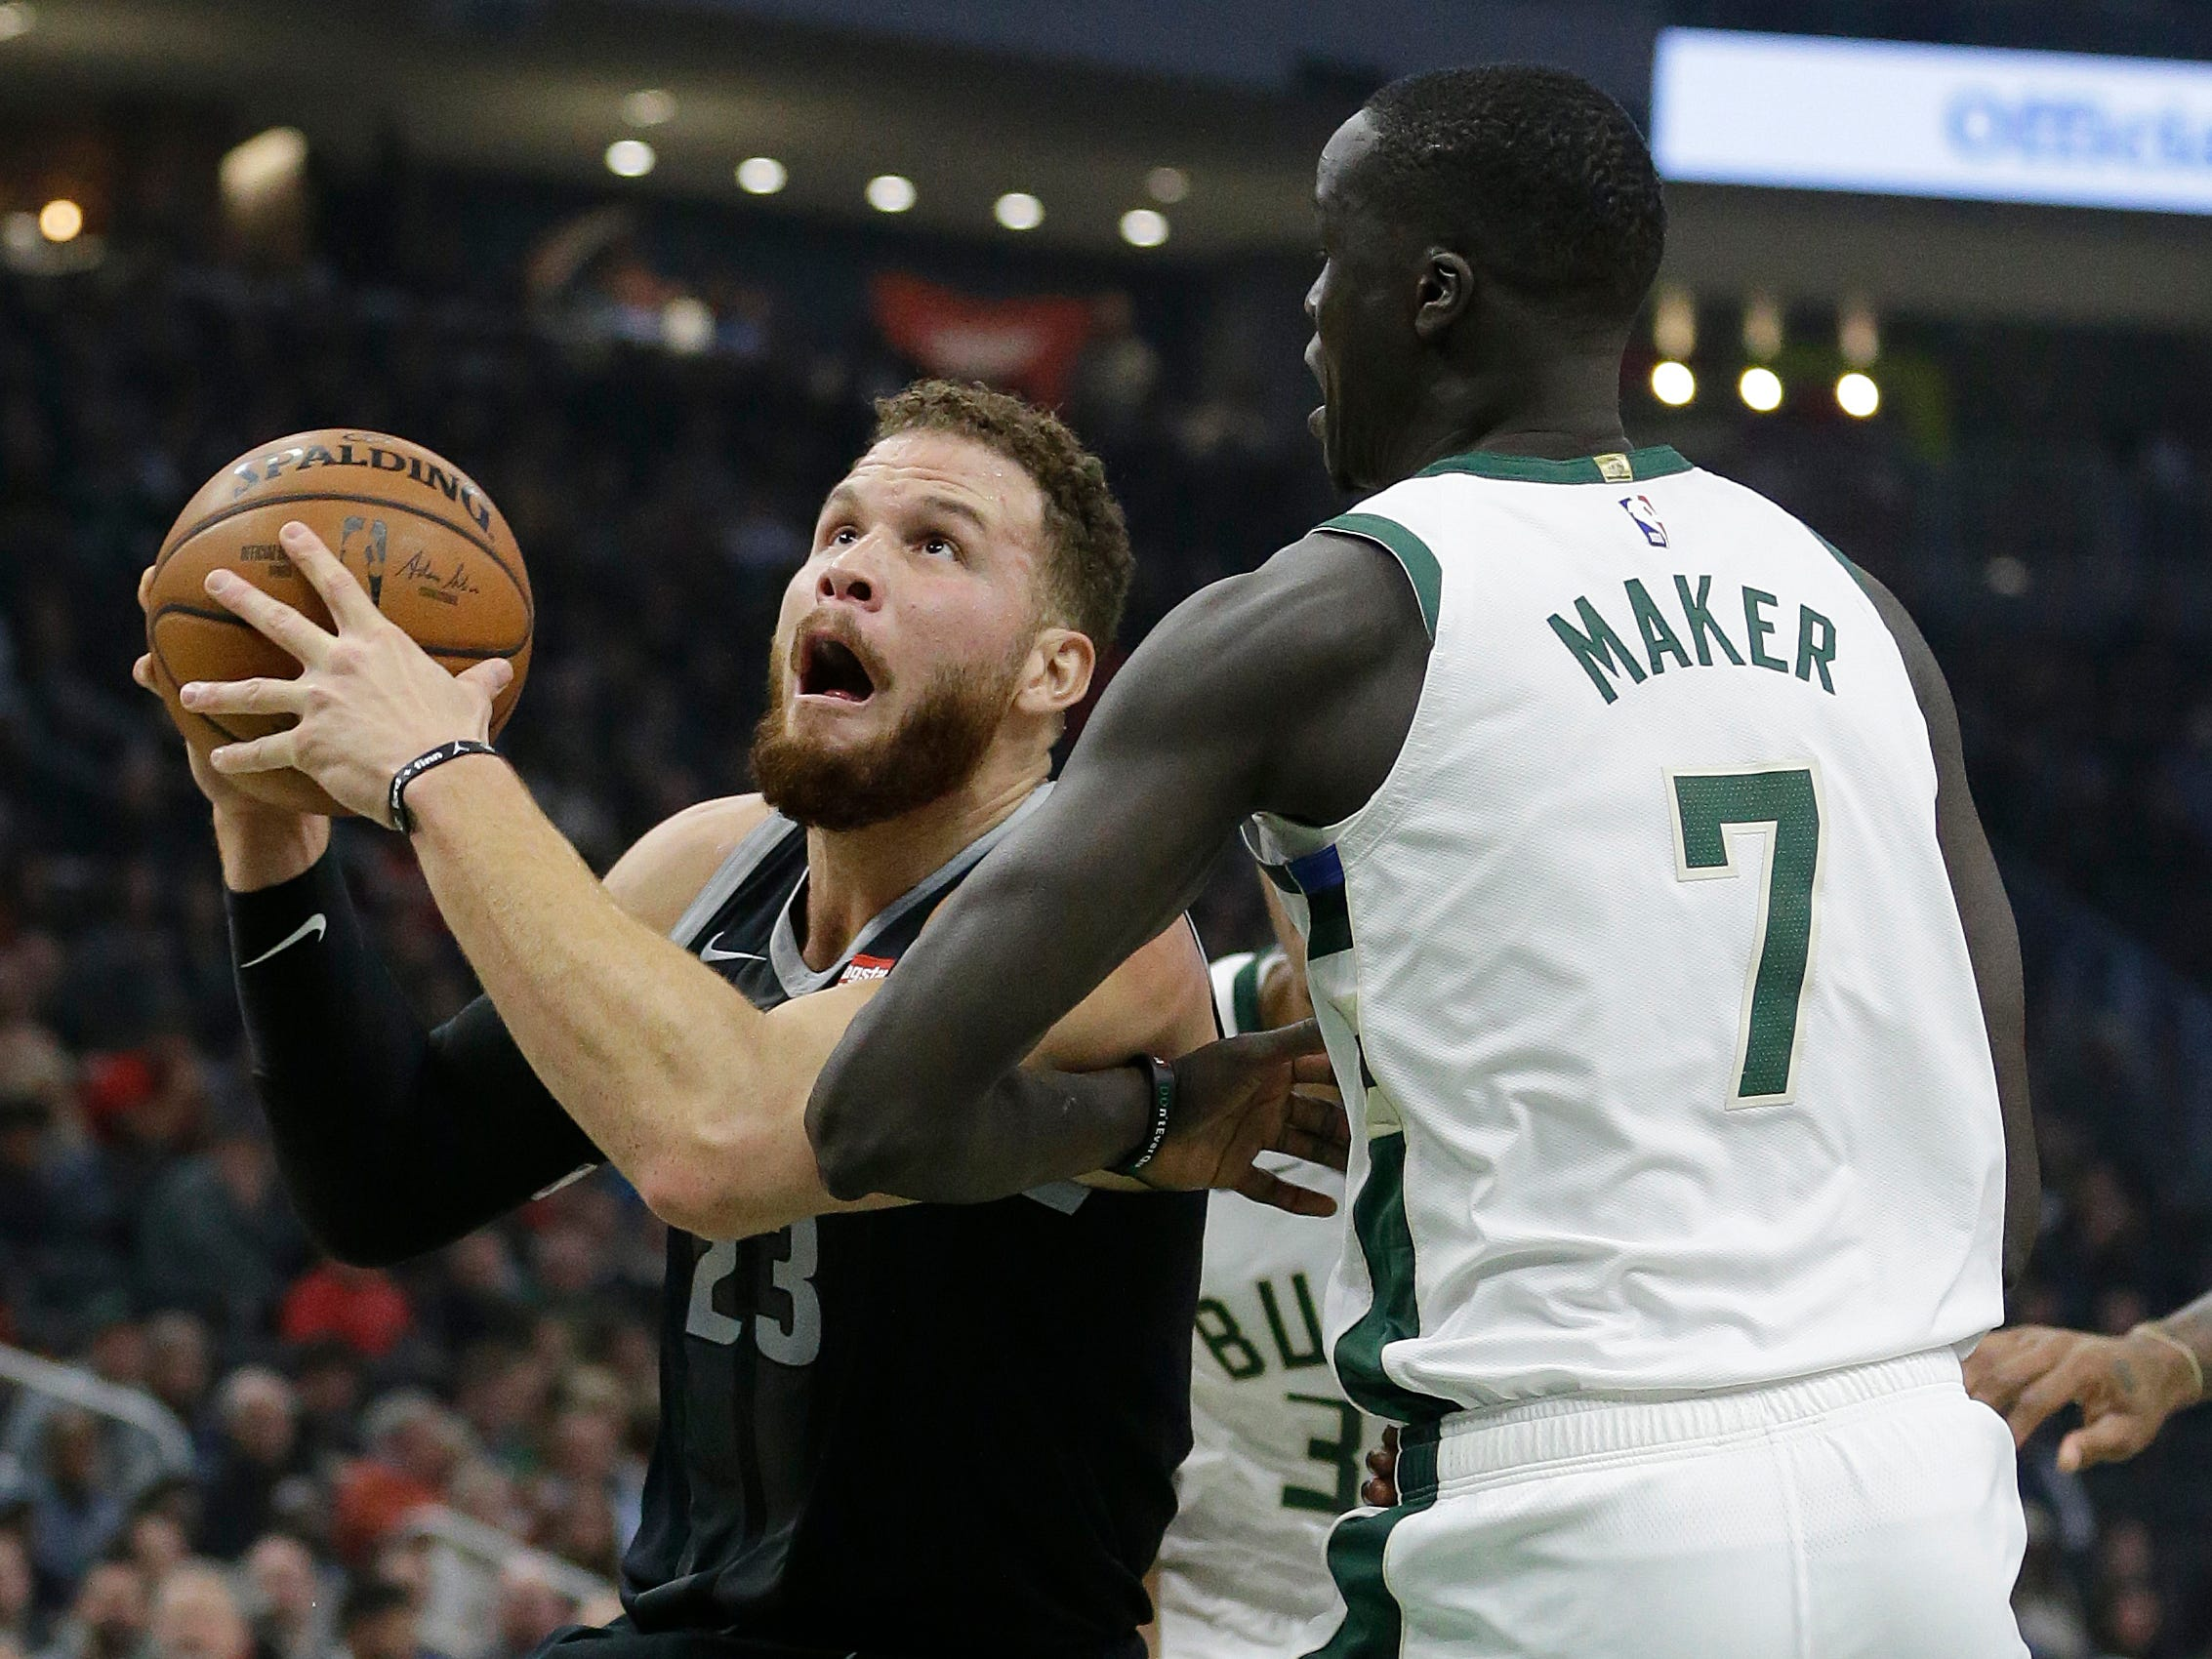 Detroit Pistons' Blake Griffin drives against Milwaukee Bucks' Thon Maker during the first half Wednesday, Dec. 5, 2018, in Milwaukee.